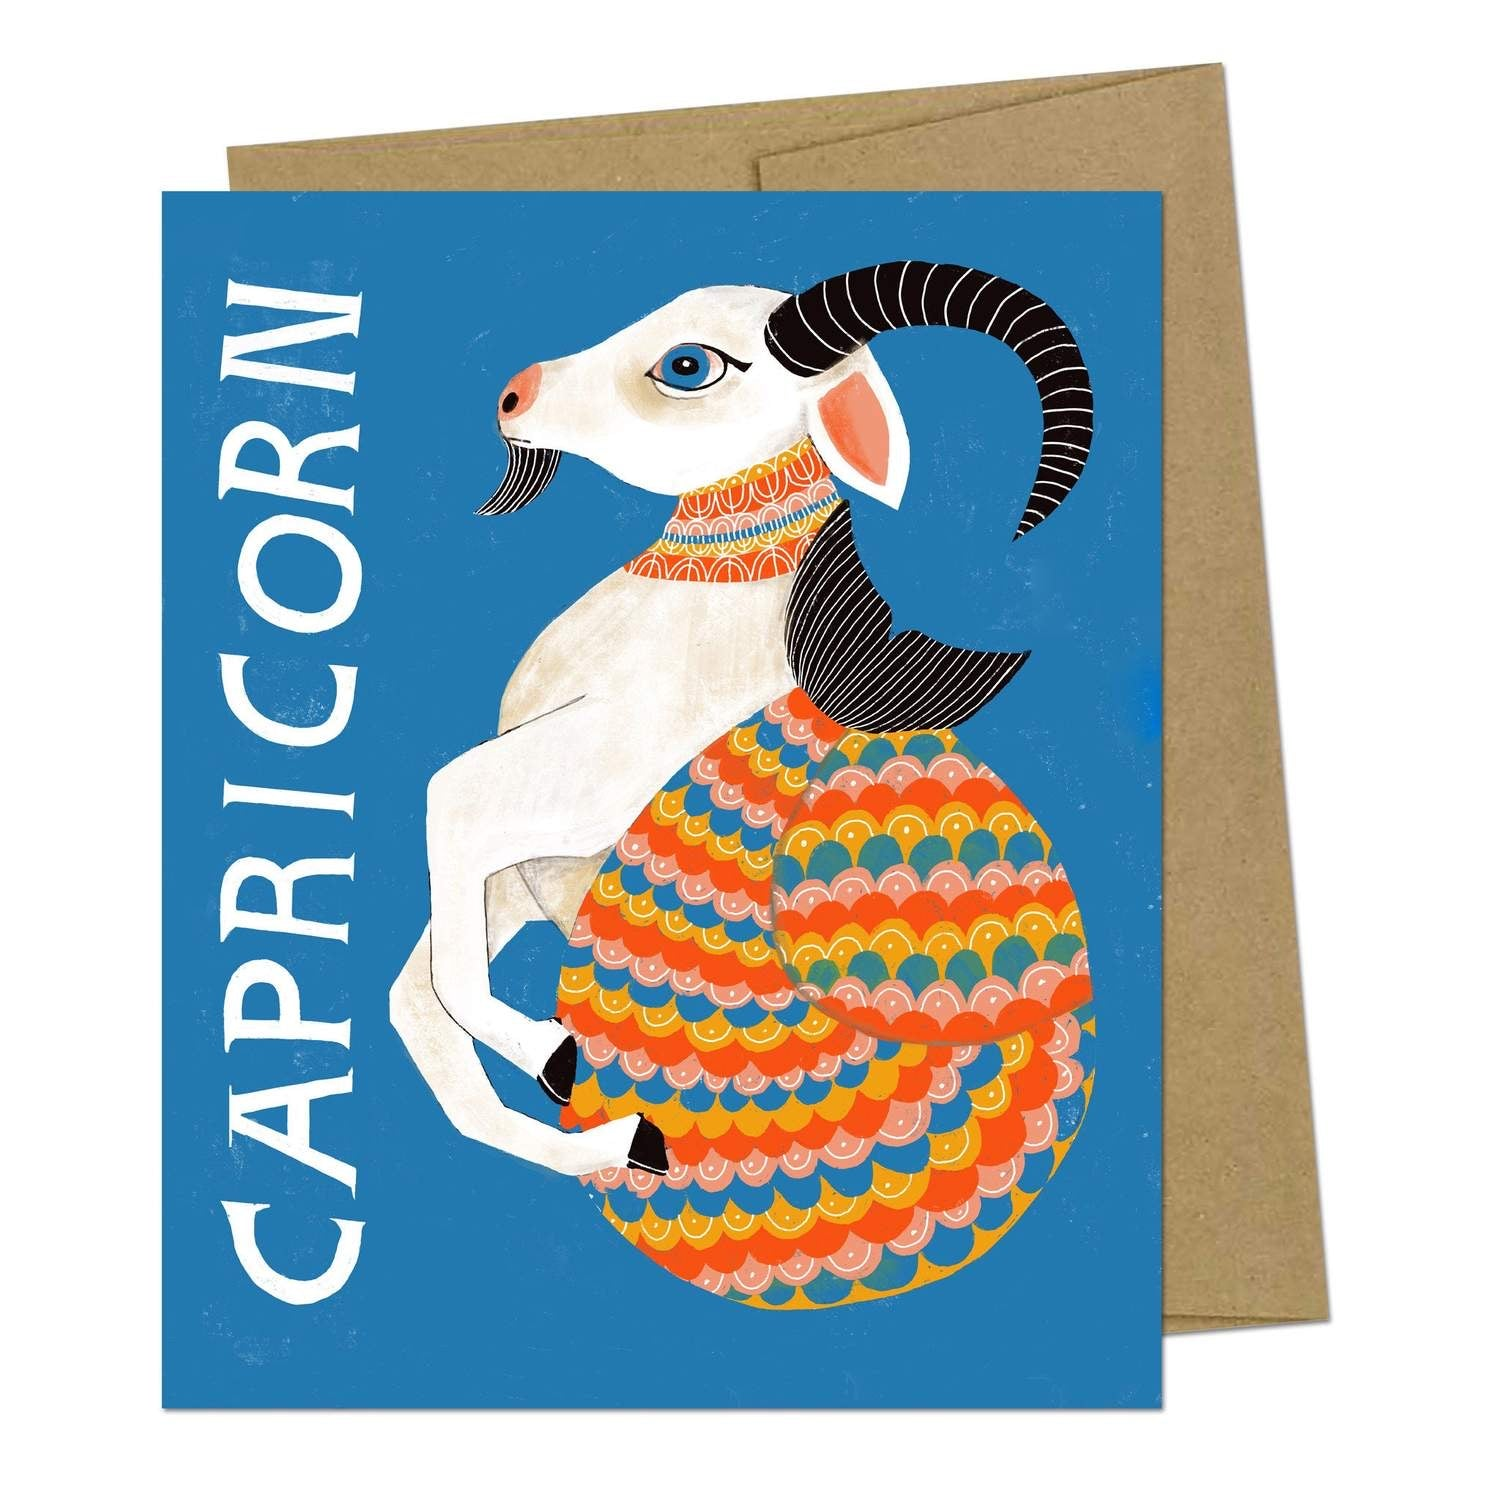 Horoscope Card Collection by Lisa Congdon